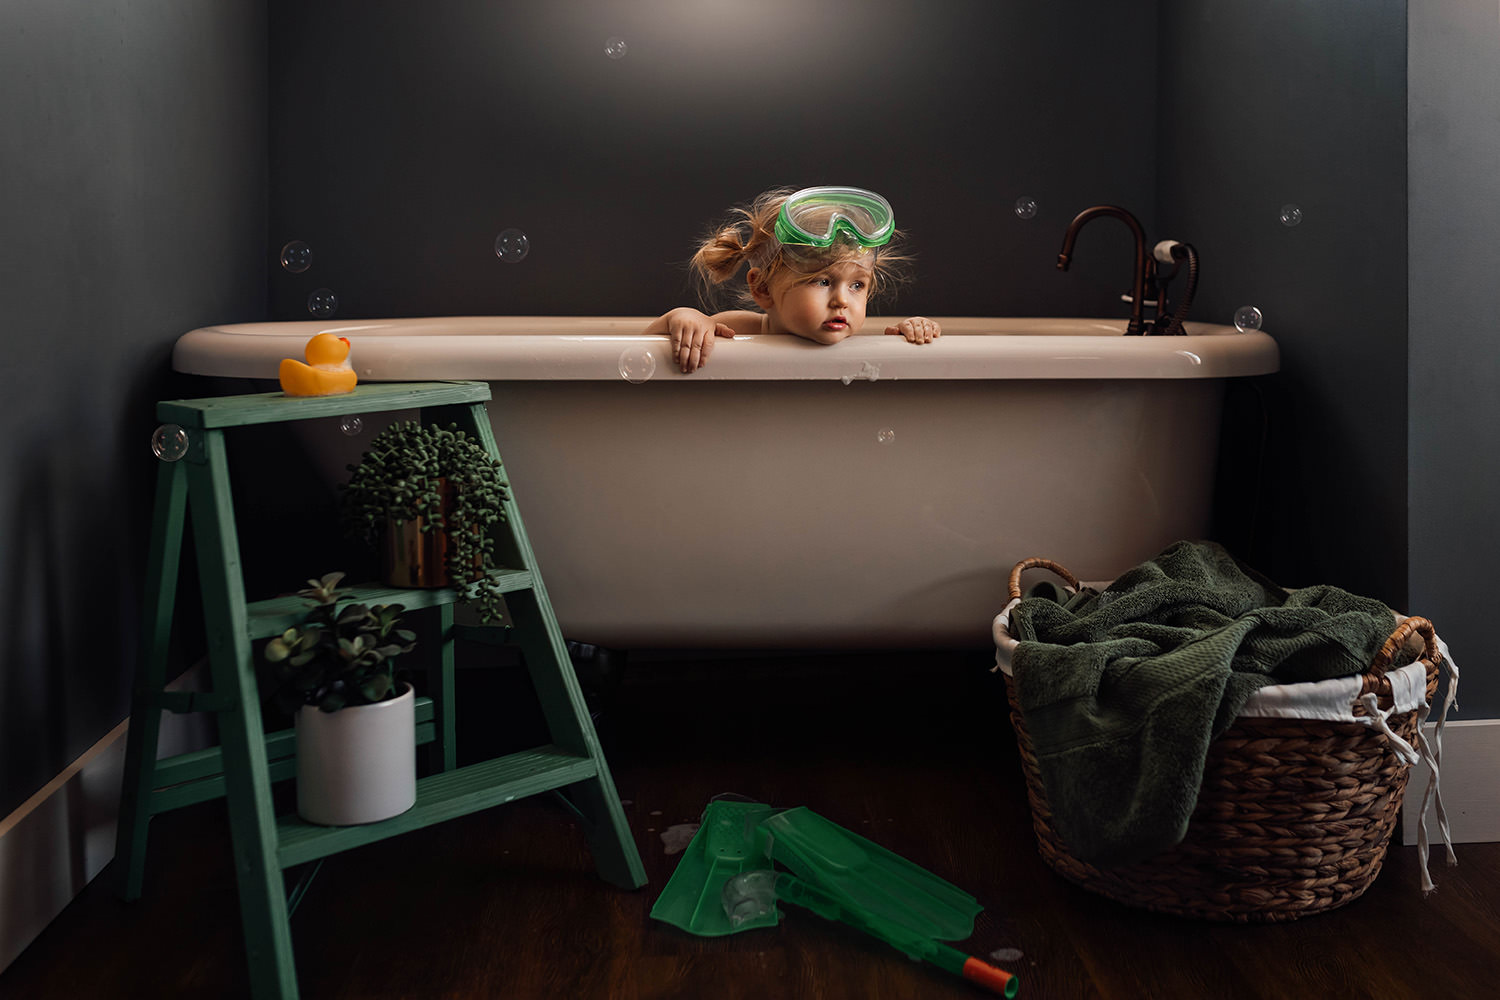 A little girl is sitting in a bathtub and wearing goggles.